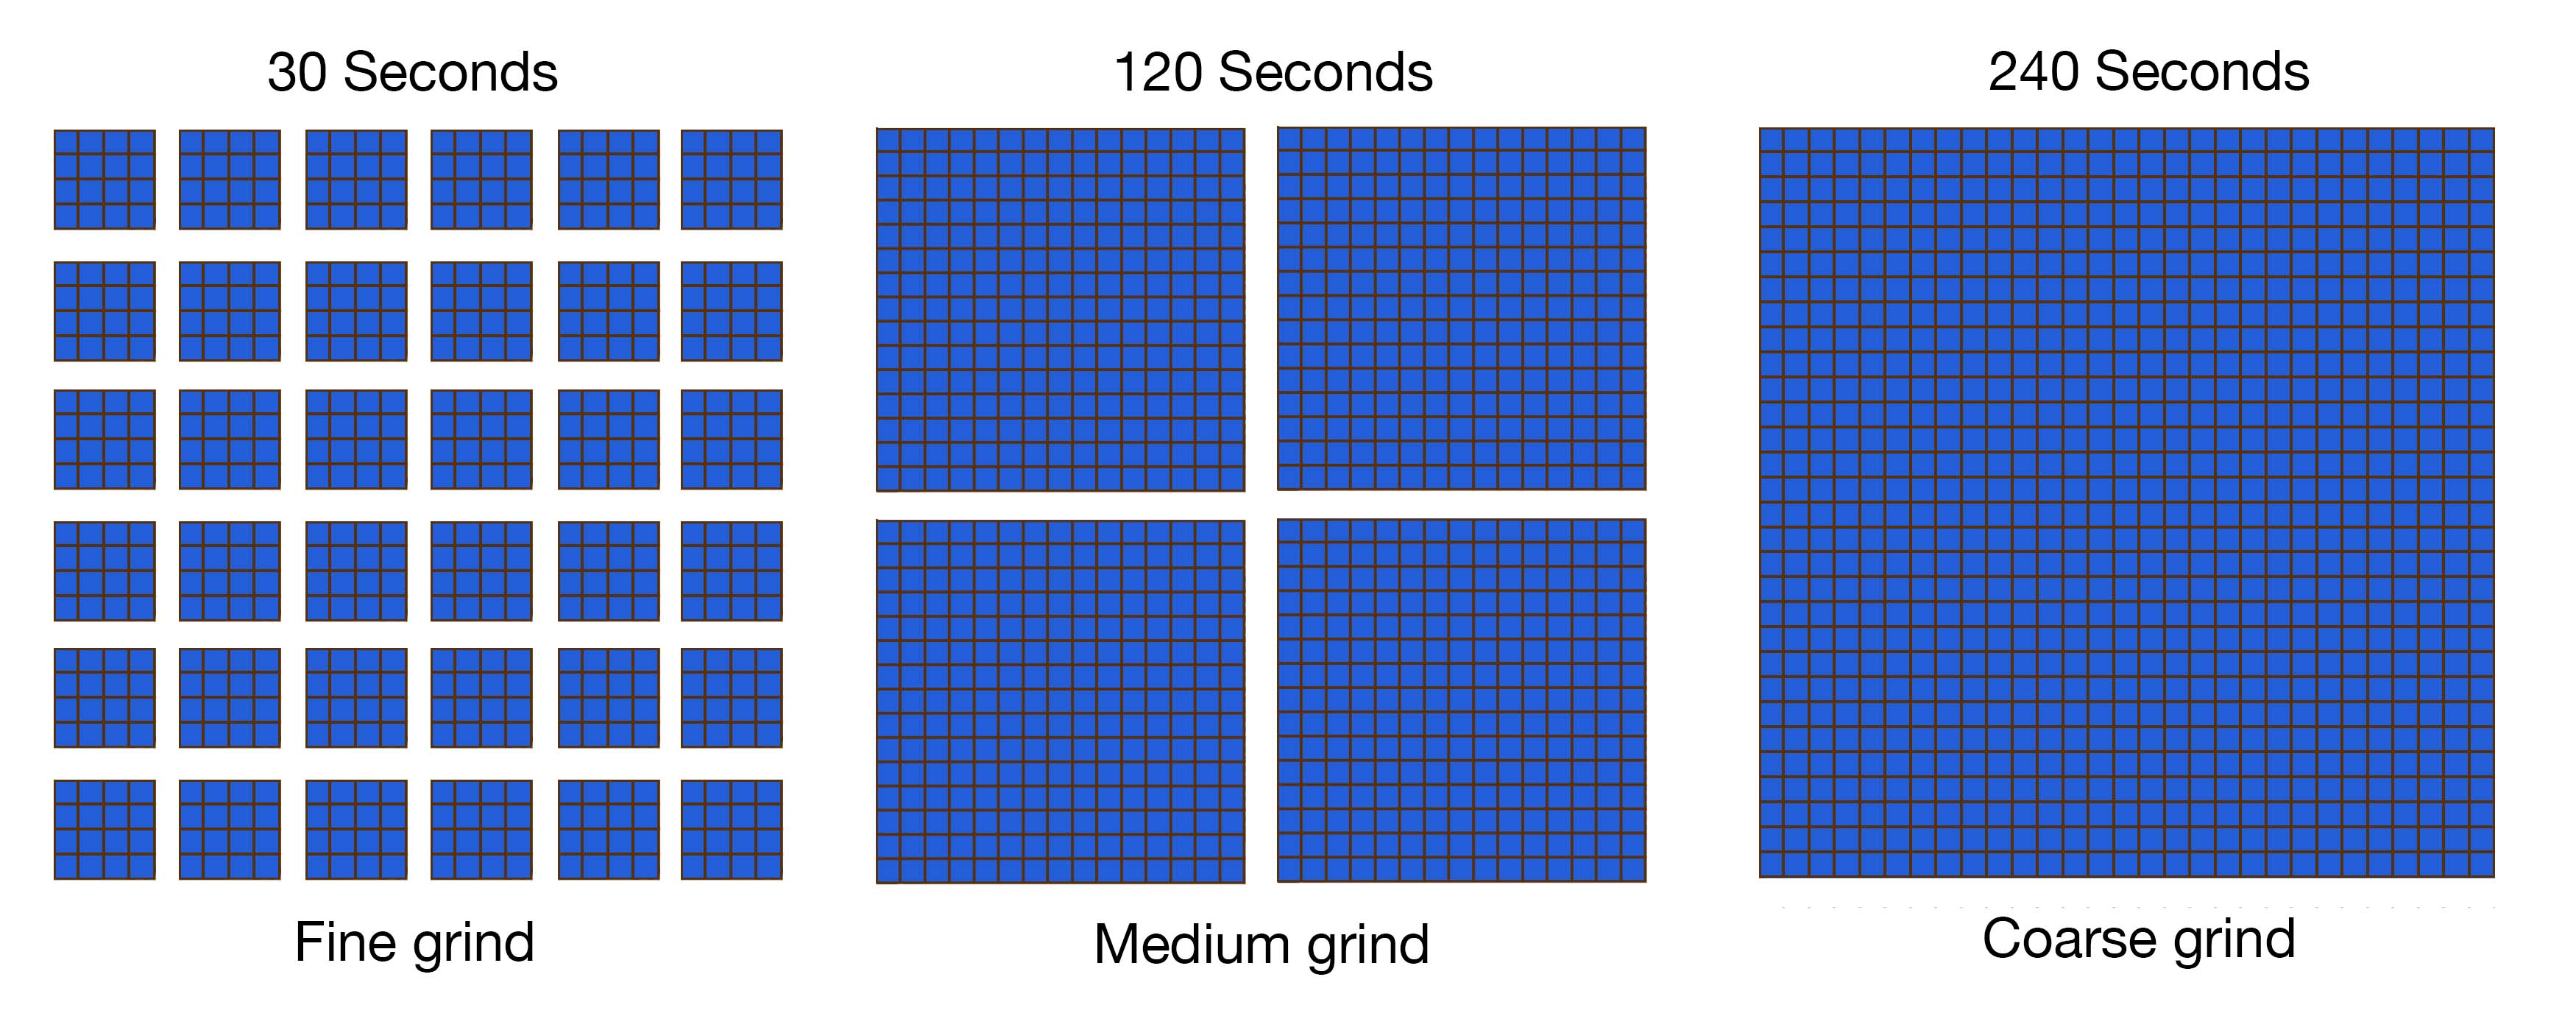 Visualization of how grind size impacts extraction